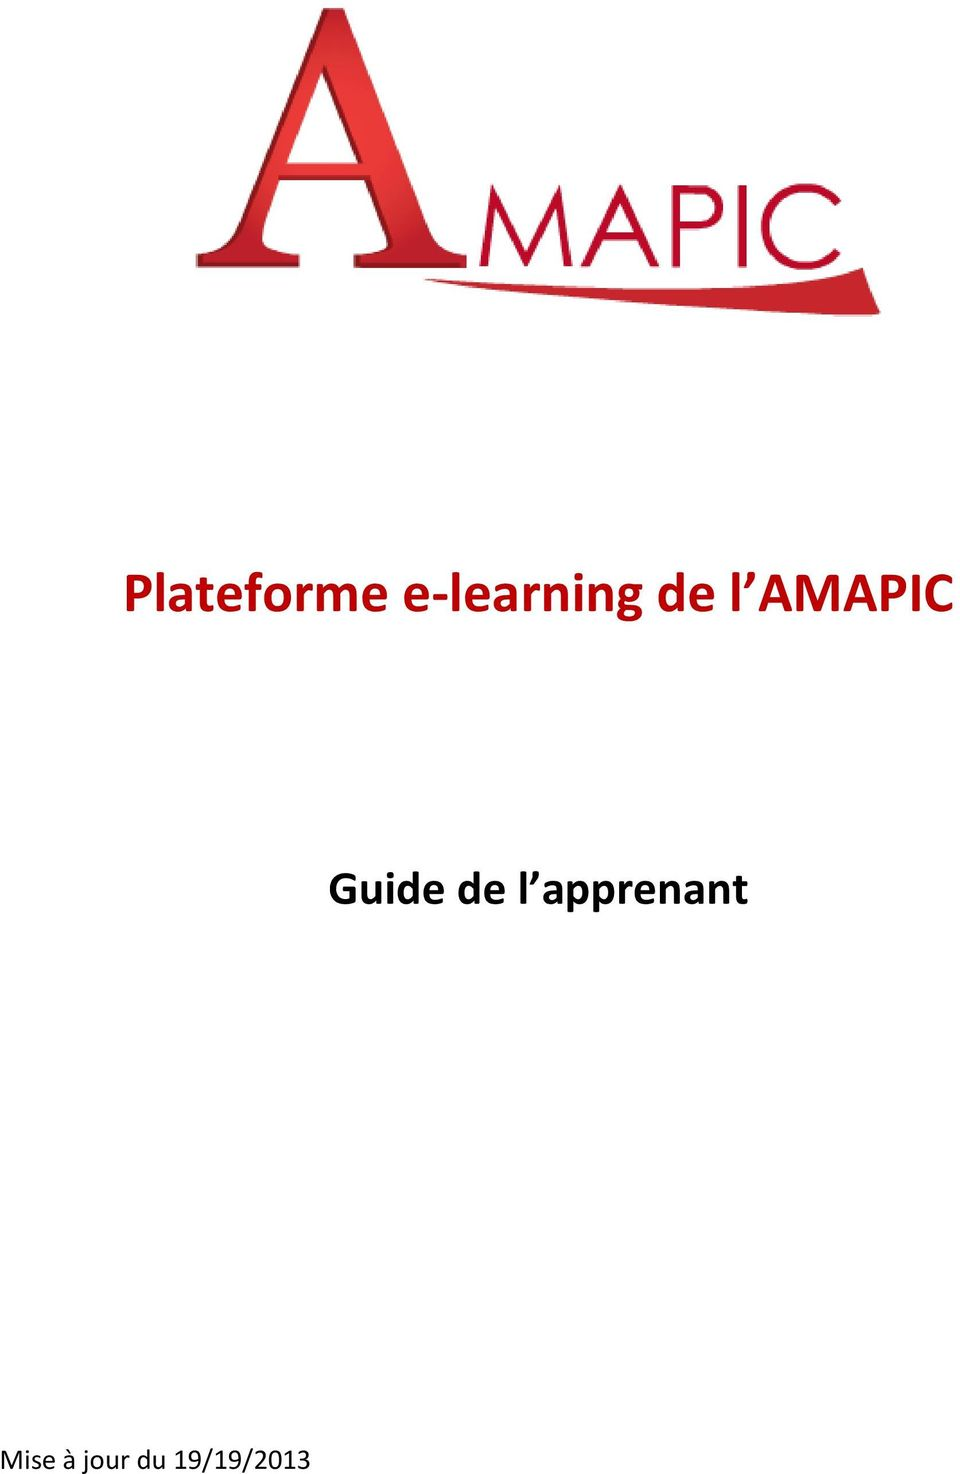 AMAPIC Guide de l